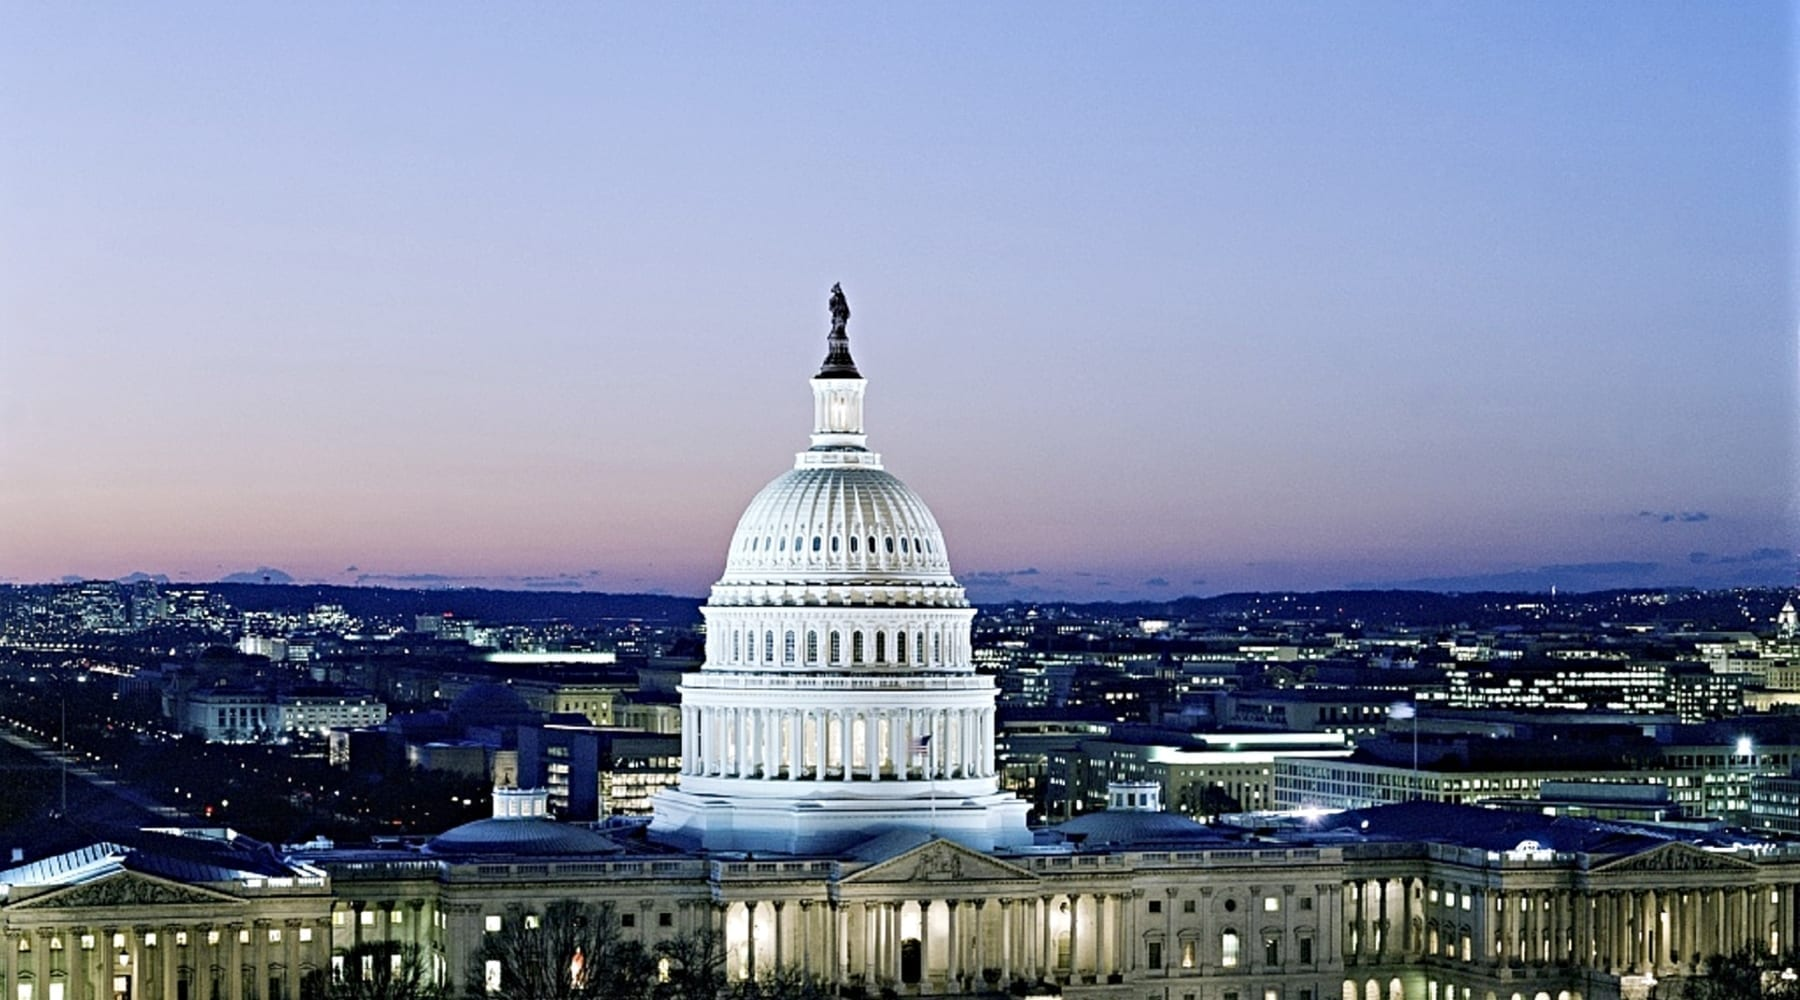 Baptists, Catholics Hold Highest Number of Seats in the 116th U.S. Congress